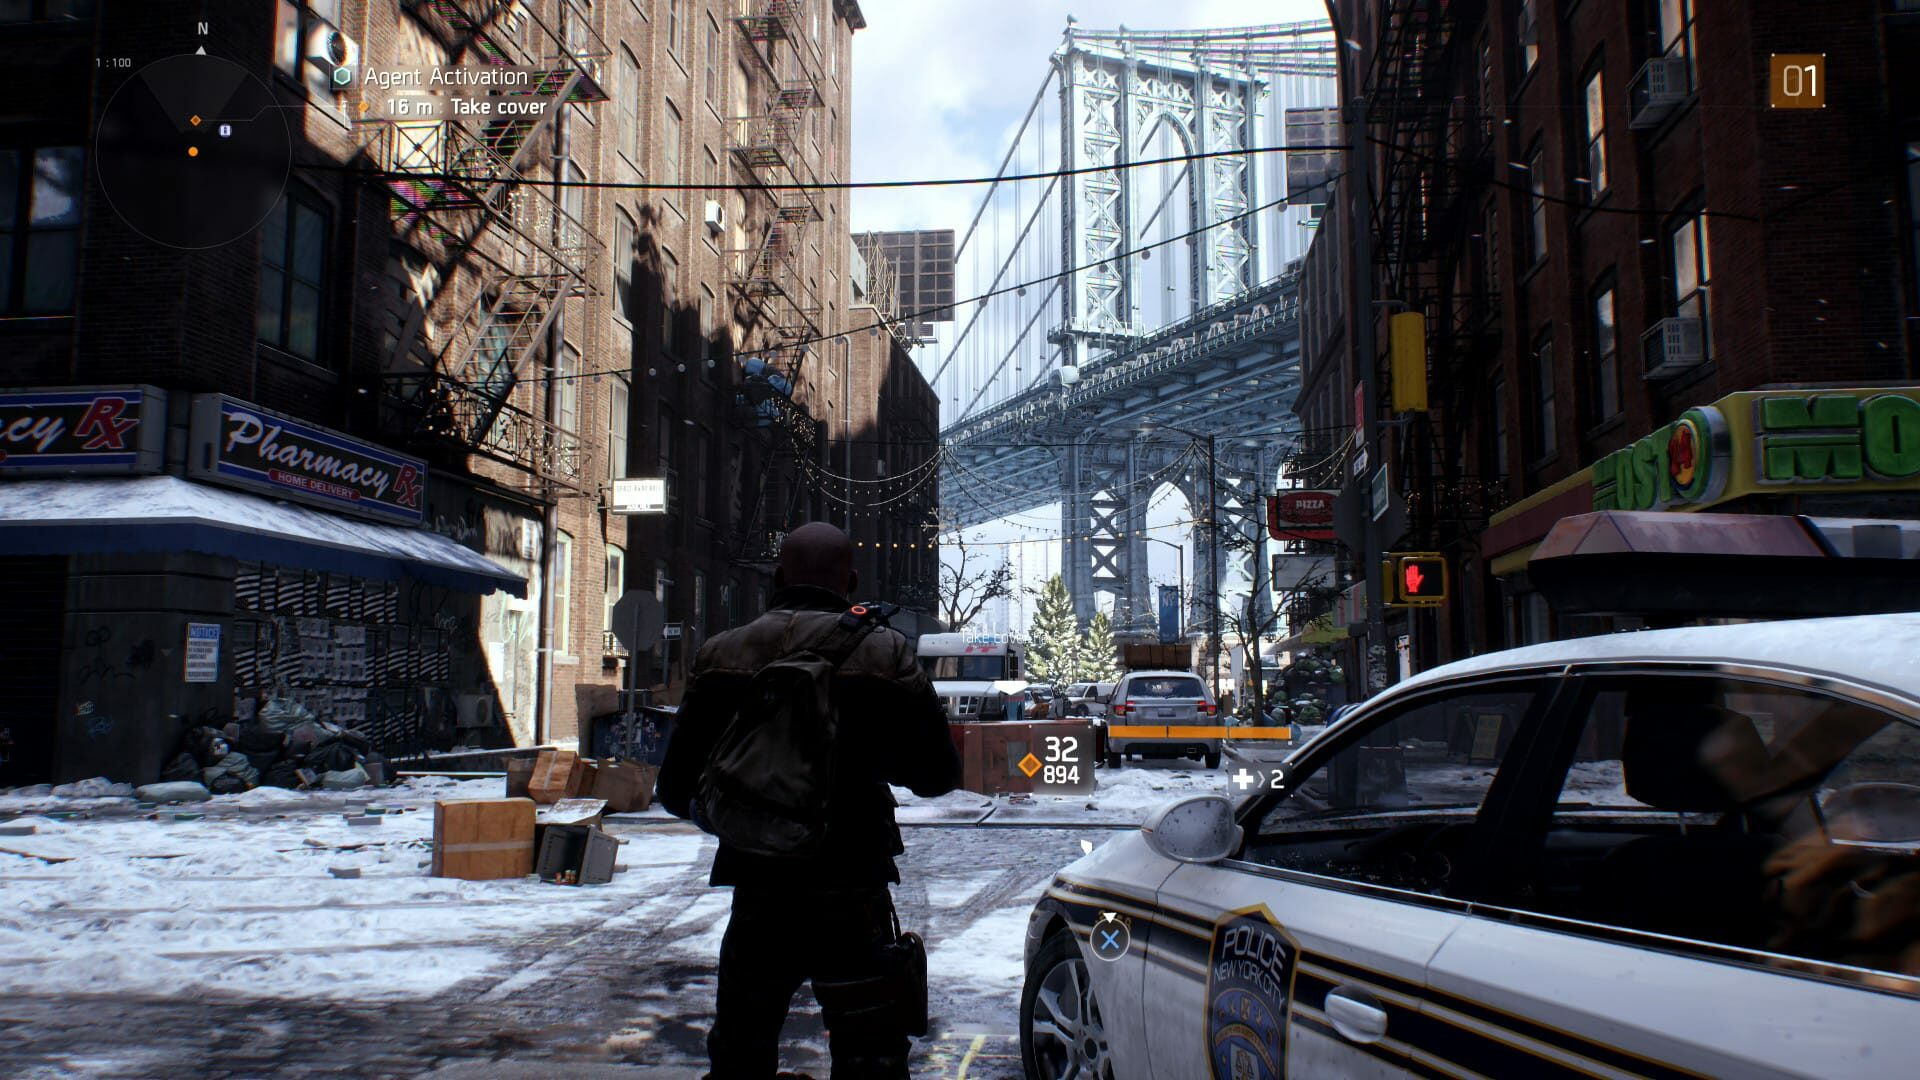 Screenshot from Tom Clancy's The Division with the character looking up at the Manhattan Bridge.